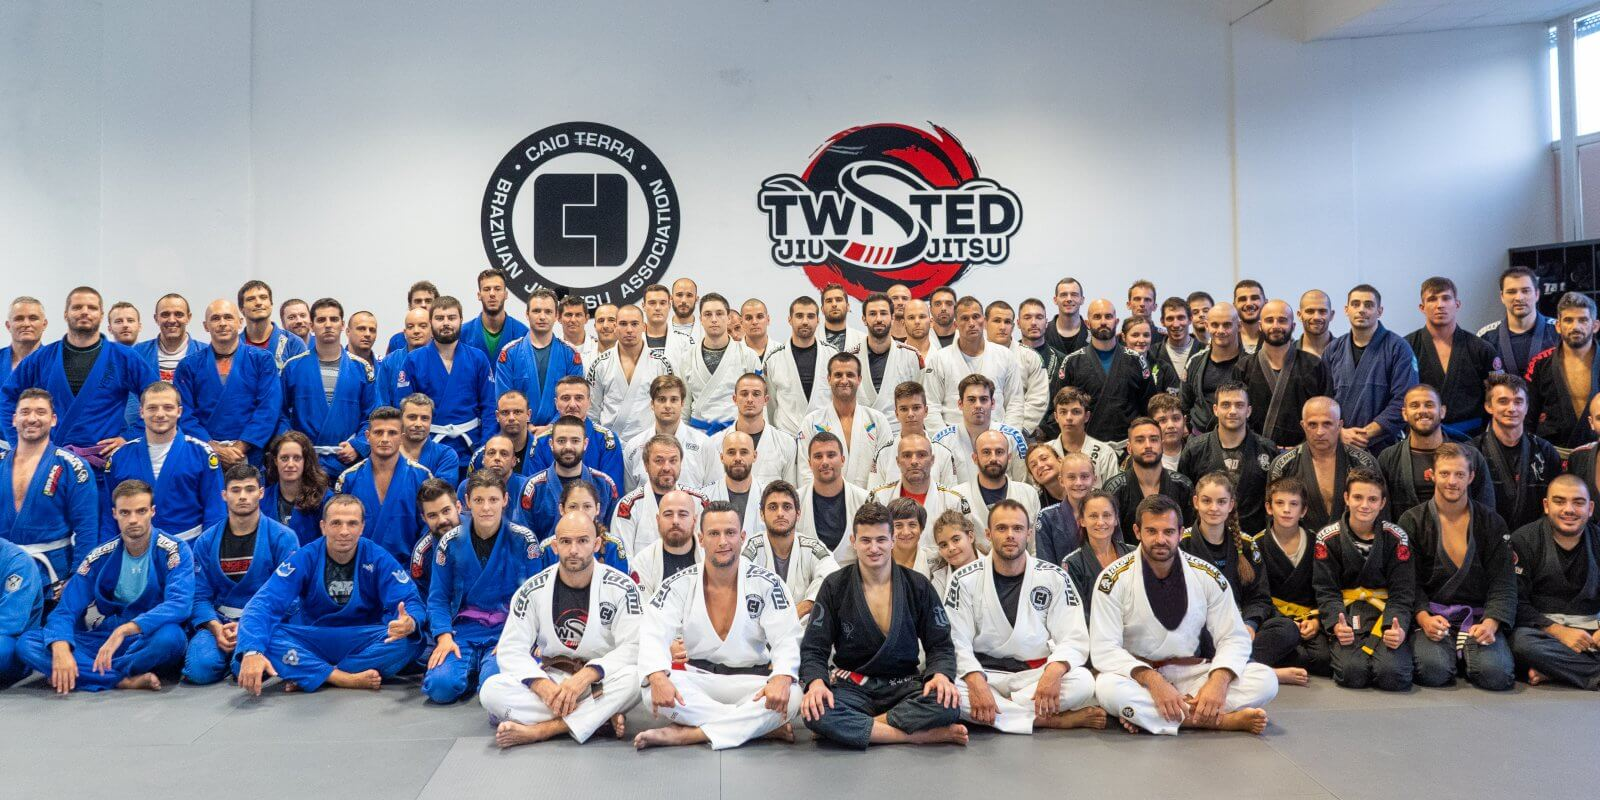 Twisted Jiu Jitsu